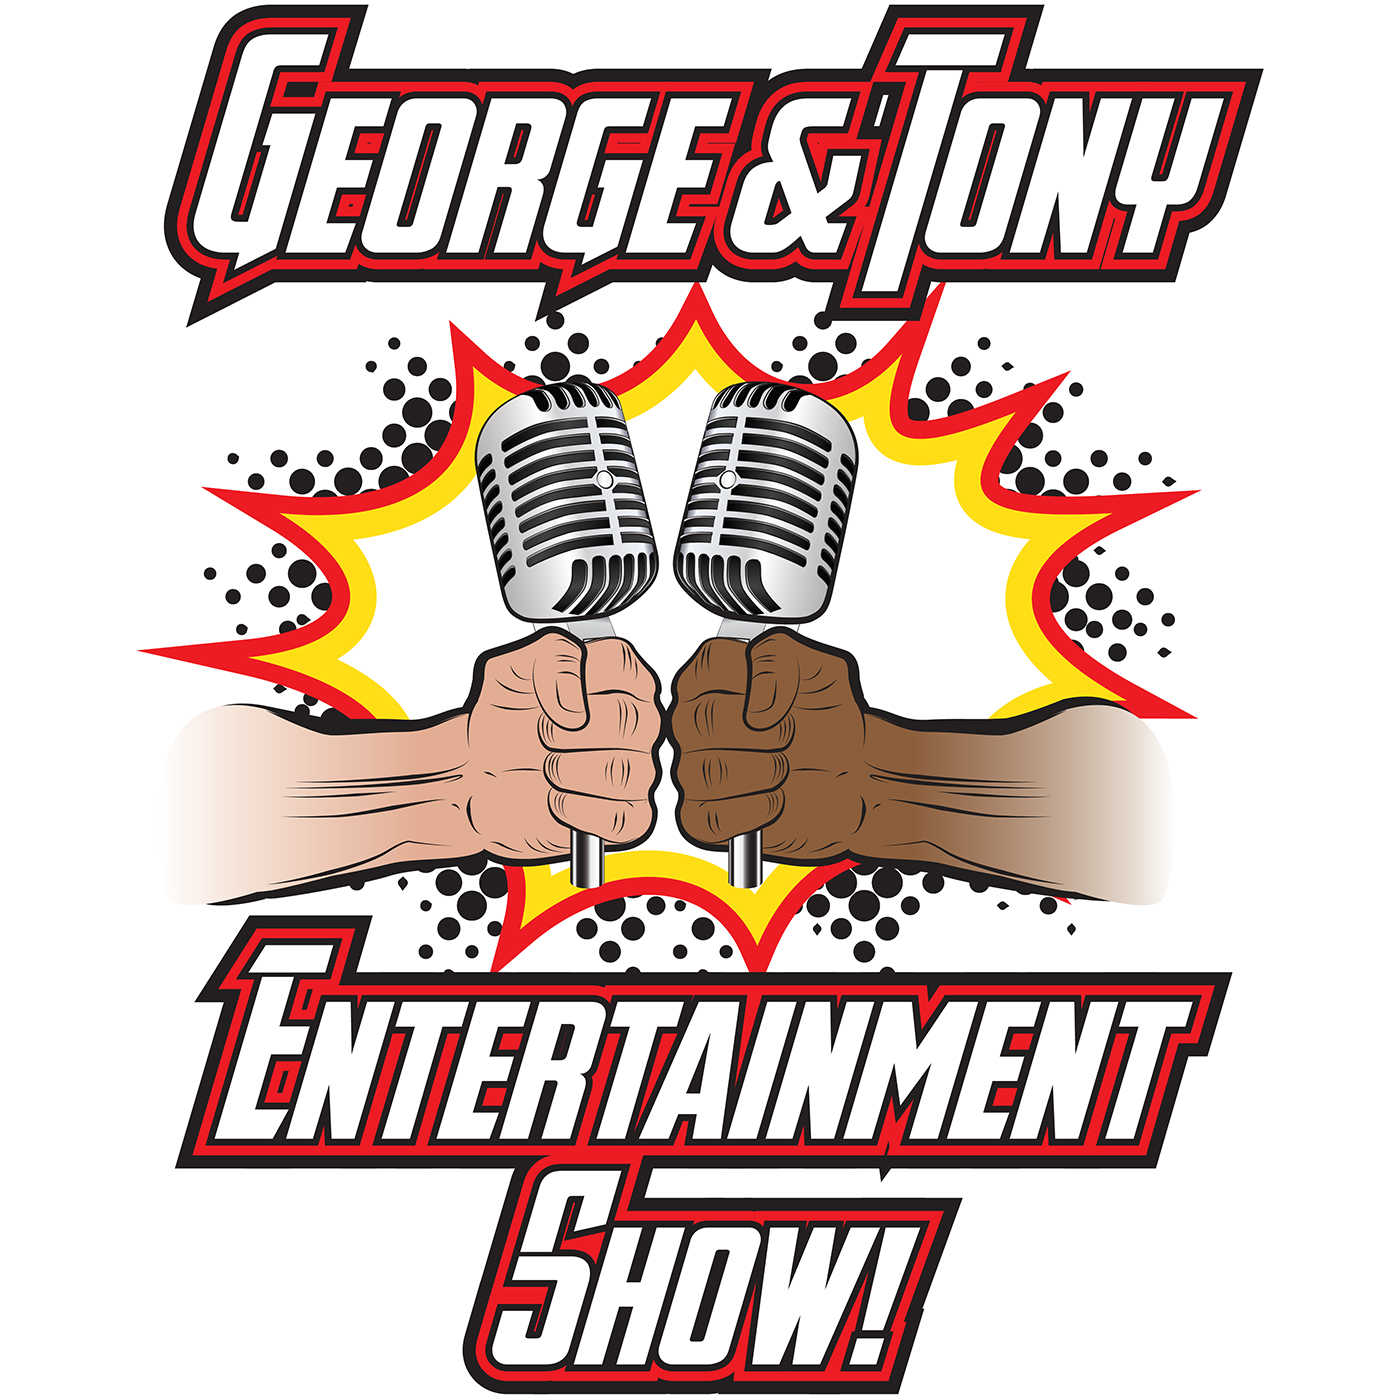 George and Tony Entertainment Show #7